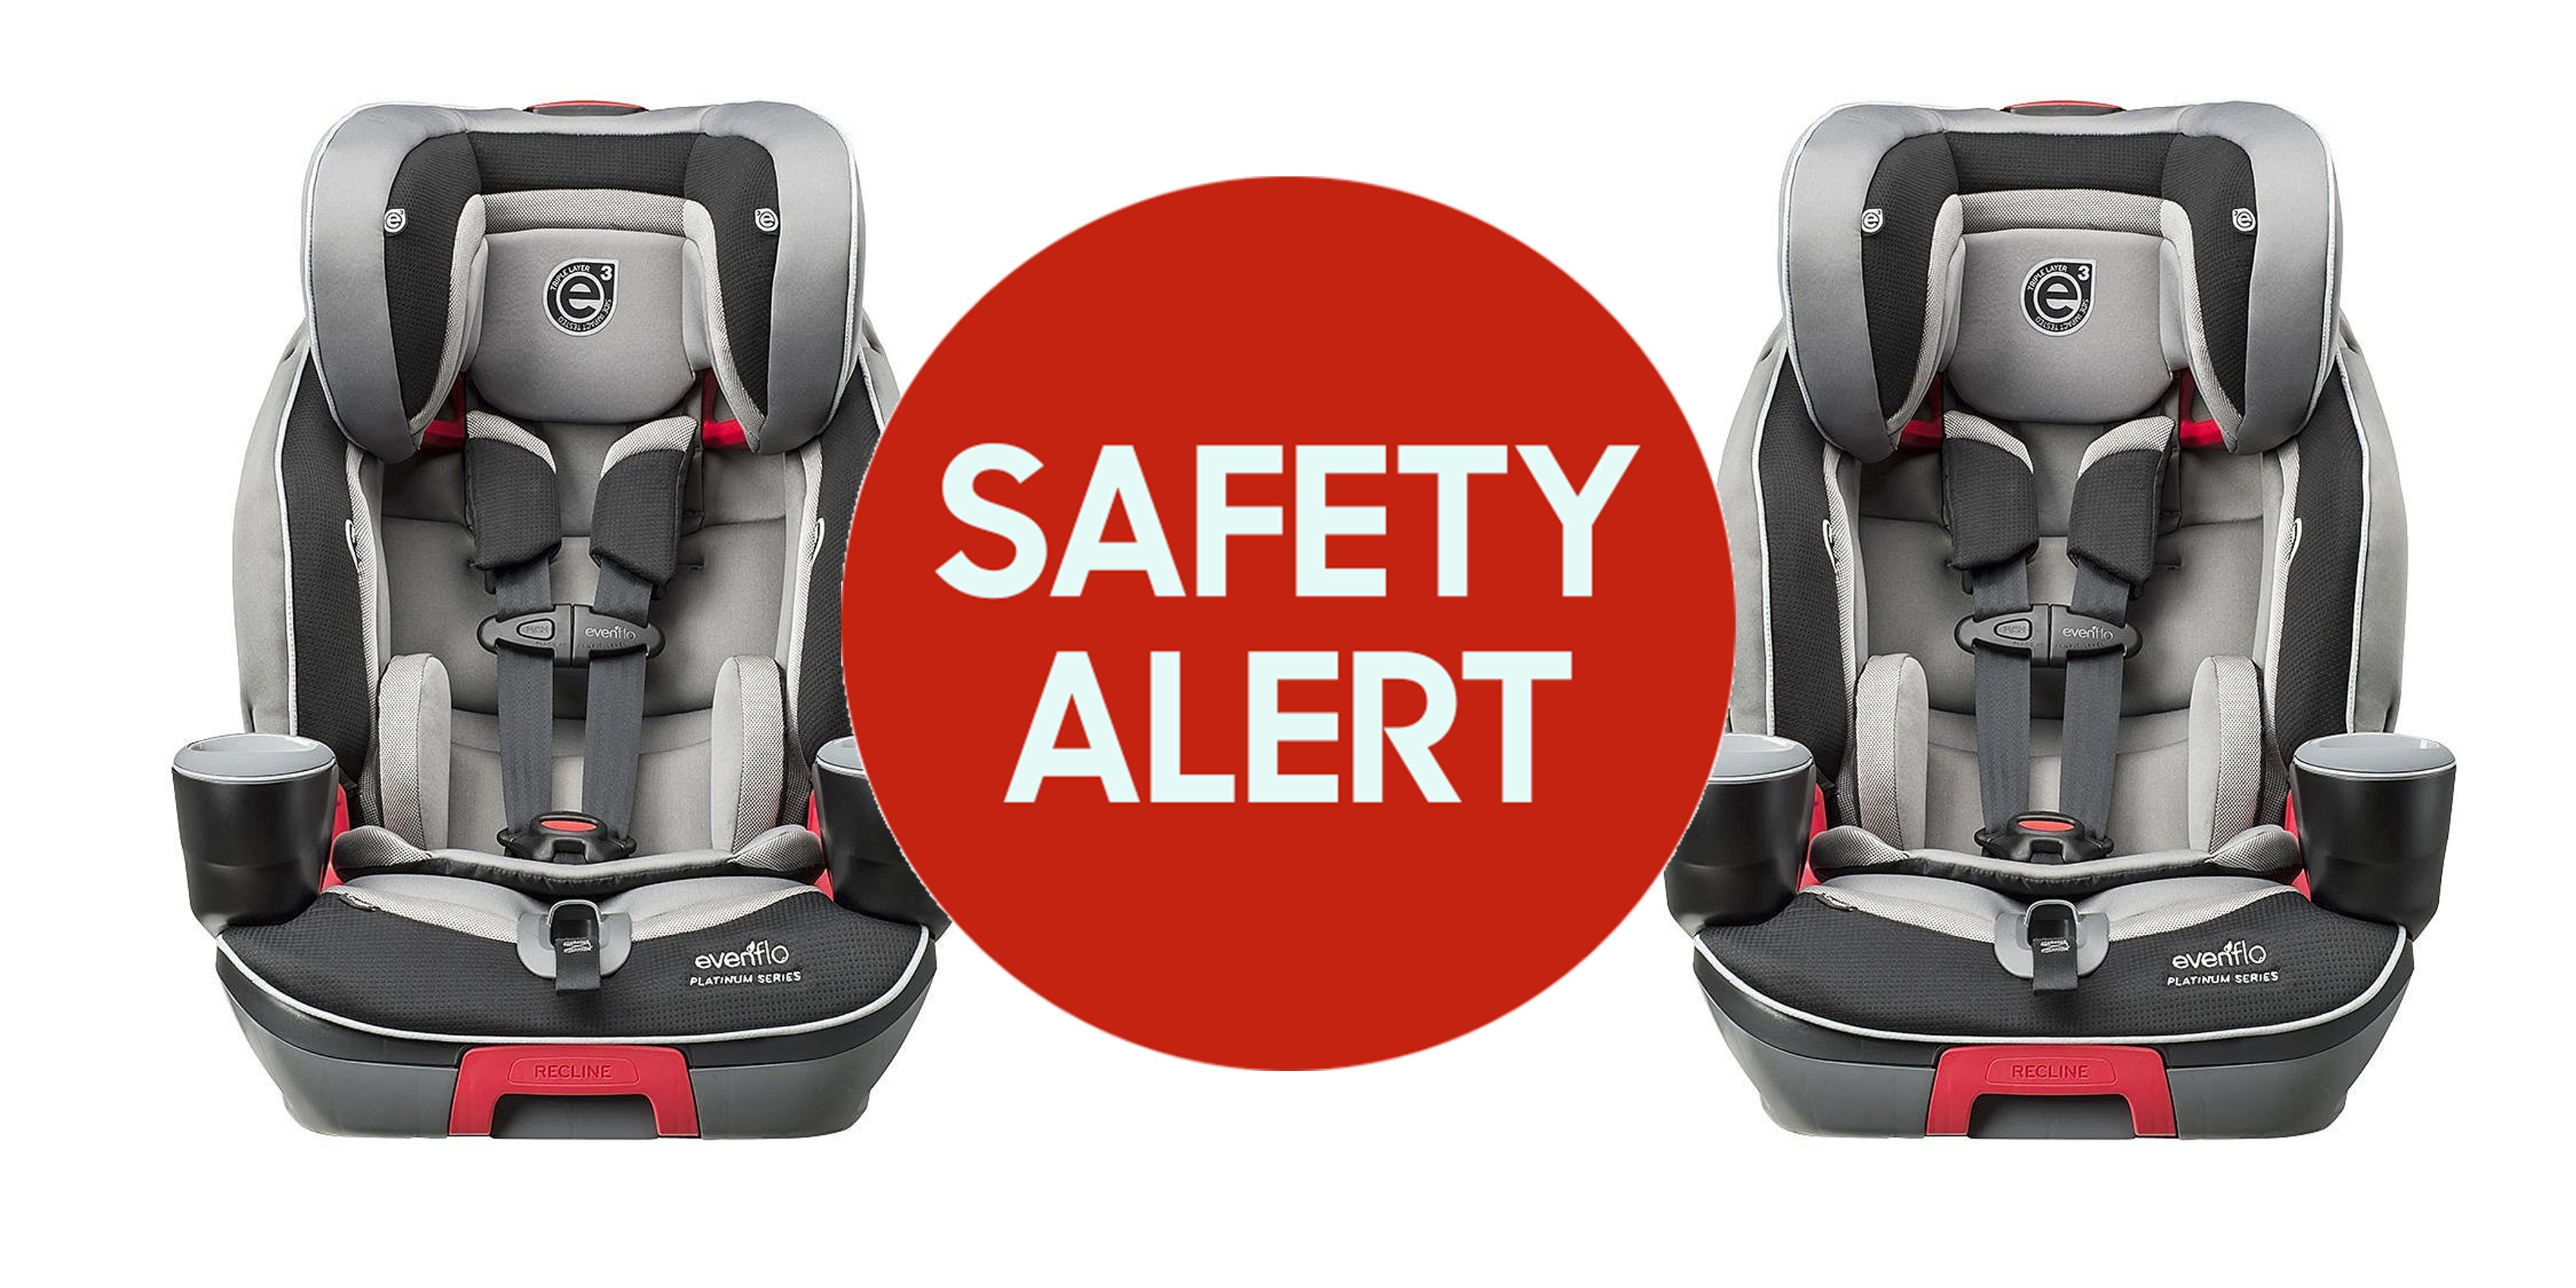 Admirable Evenflo Recalls Car Seats Due To Safety Concerns Evenflocombination Booster Seats Recalled Evenflo Recalls Car Seats Due To Safety Concerns Evenflo Evenflo Car Seat Target Evenflo Car Seat M baby Evenflo Car Seat